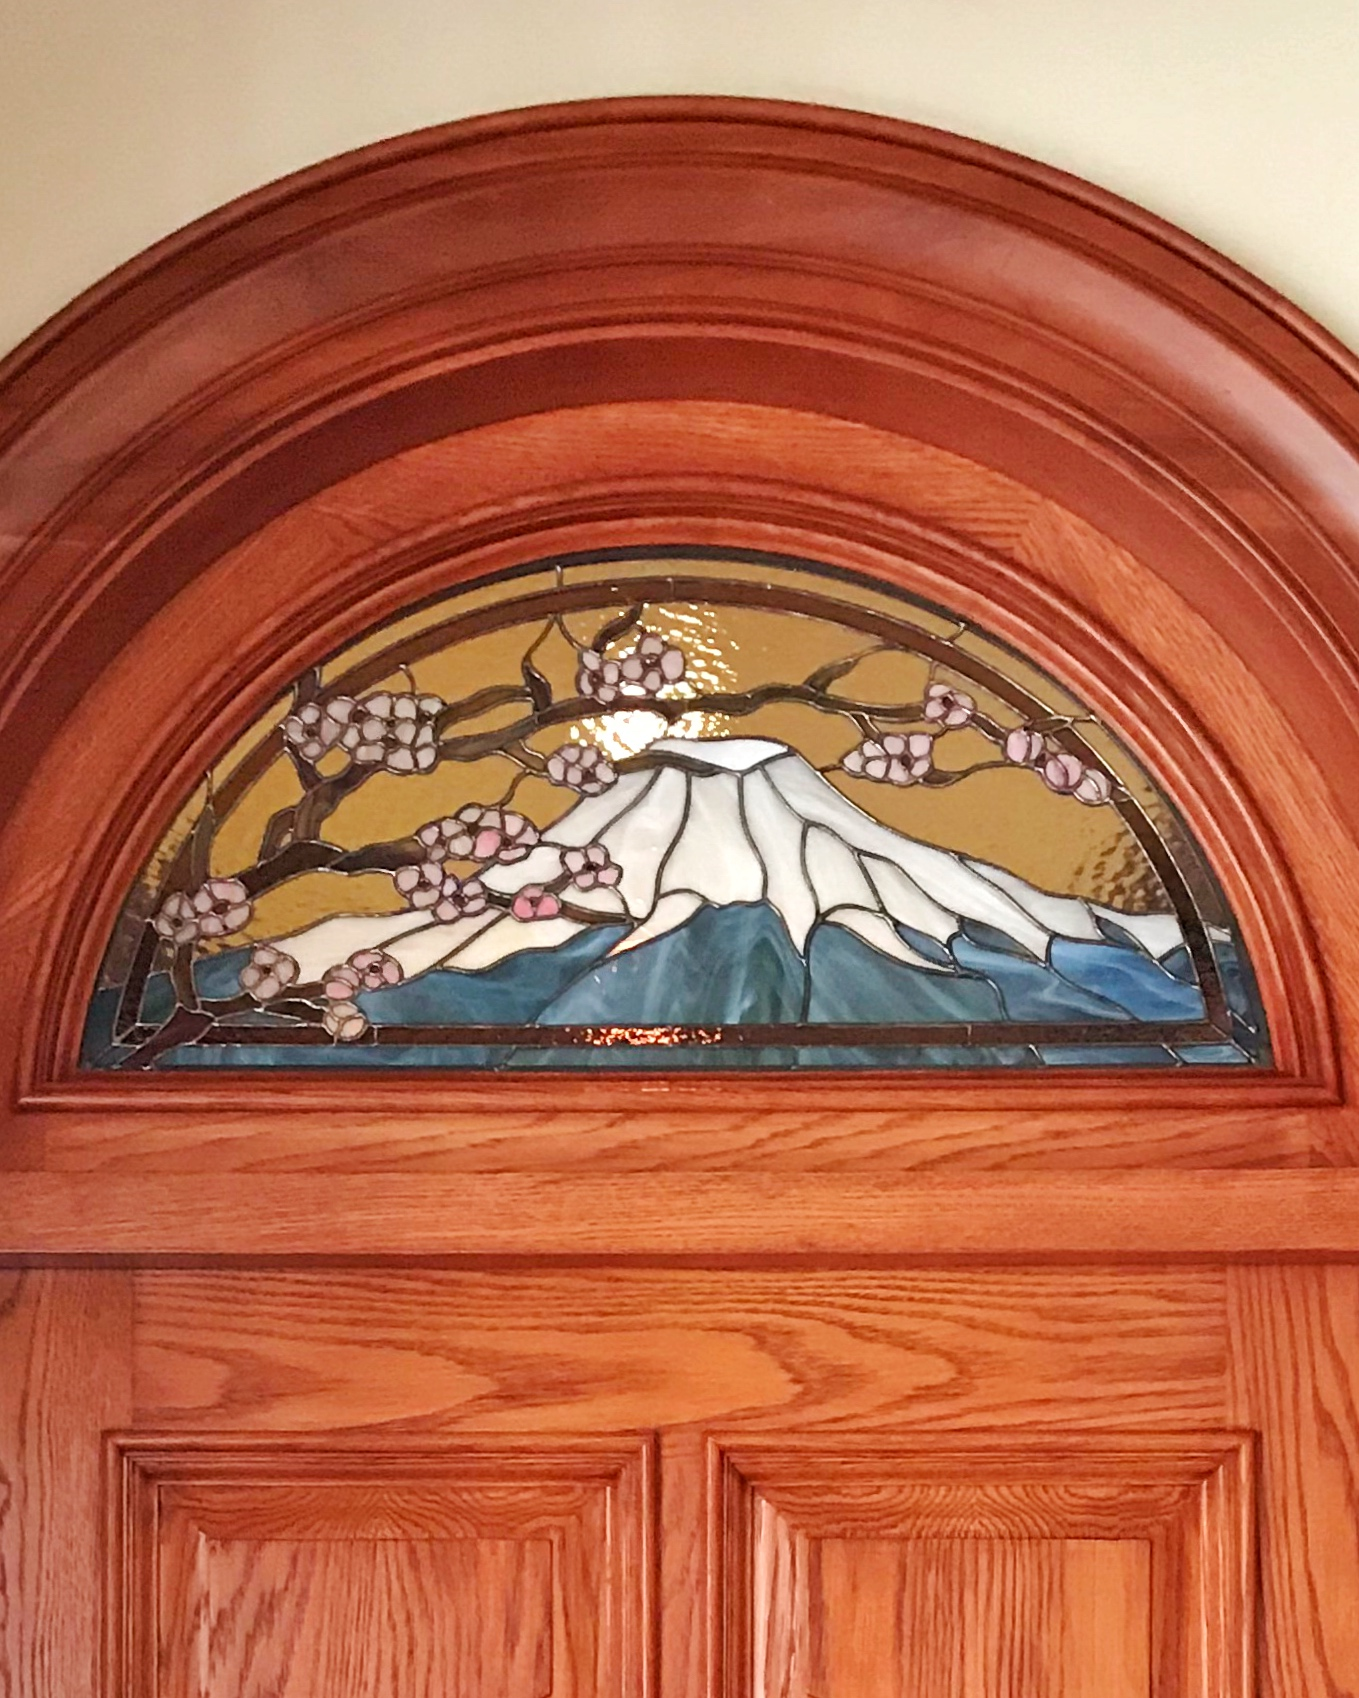 mt fuji stained glass copper foil design spectrum backlit glass transom door custom art glass legacy glass studios california portola valley bay area backlit close up.jpg